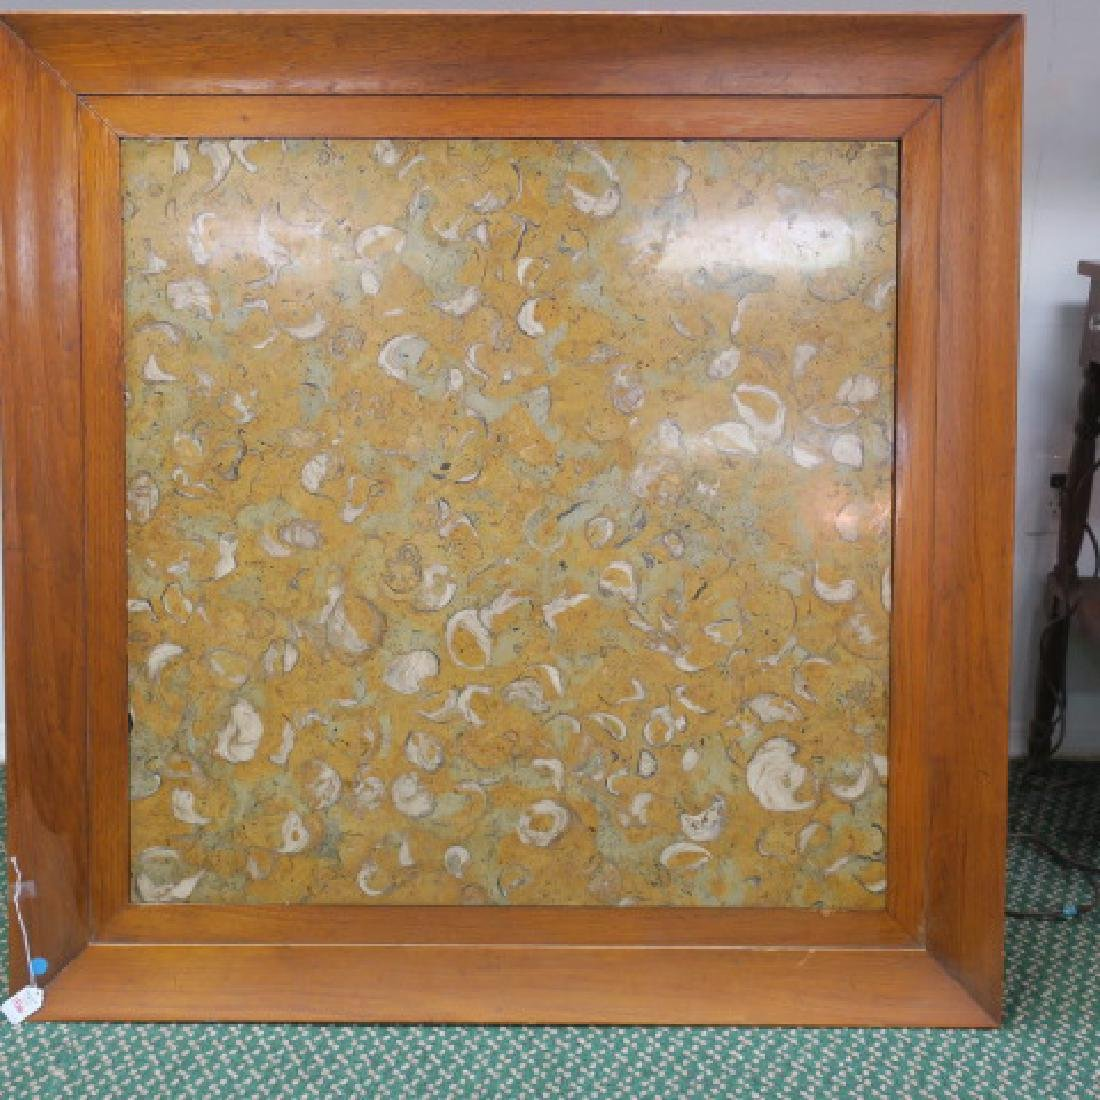 Thomasville Table with Sienna Marble & Oysters: